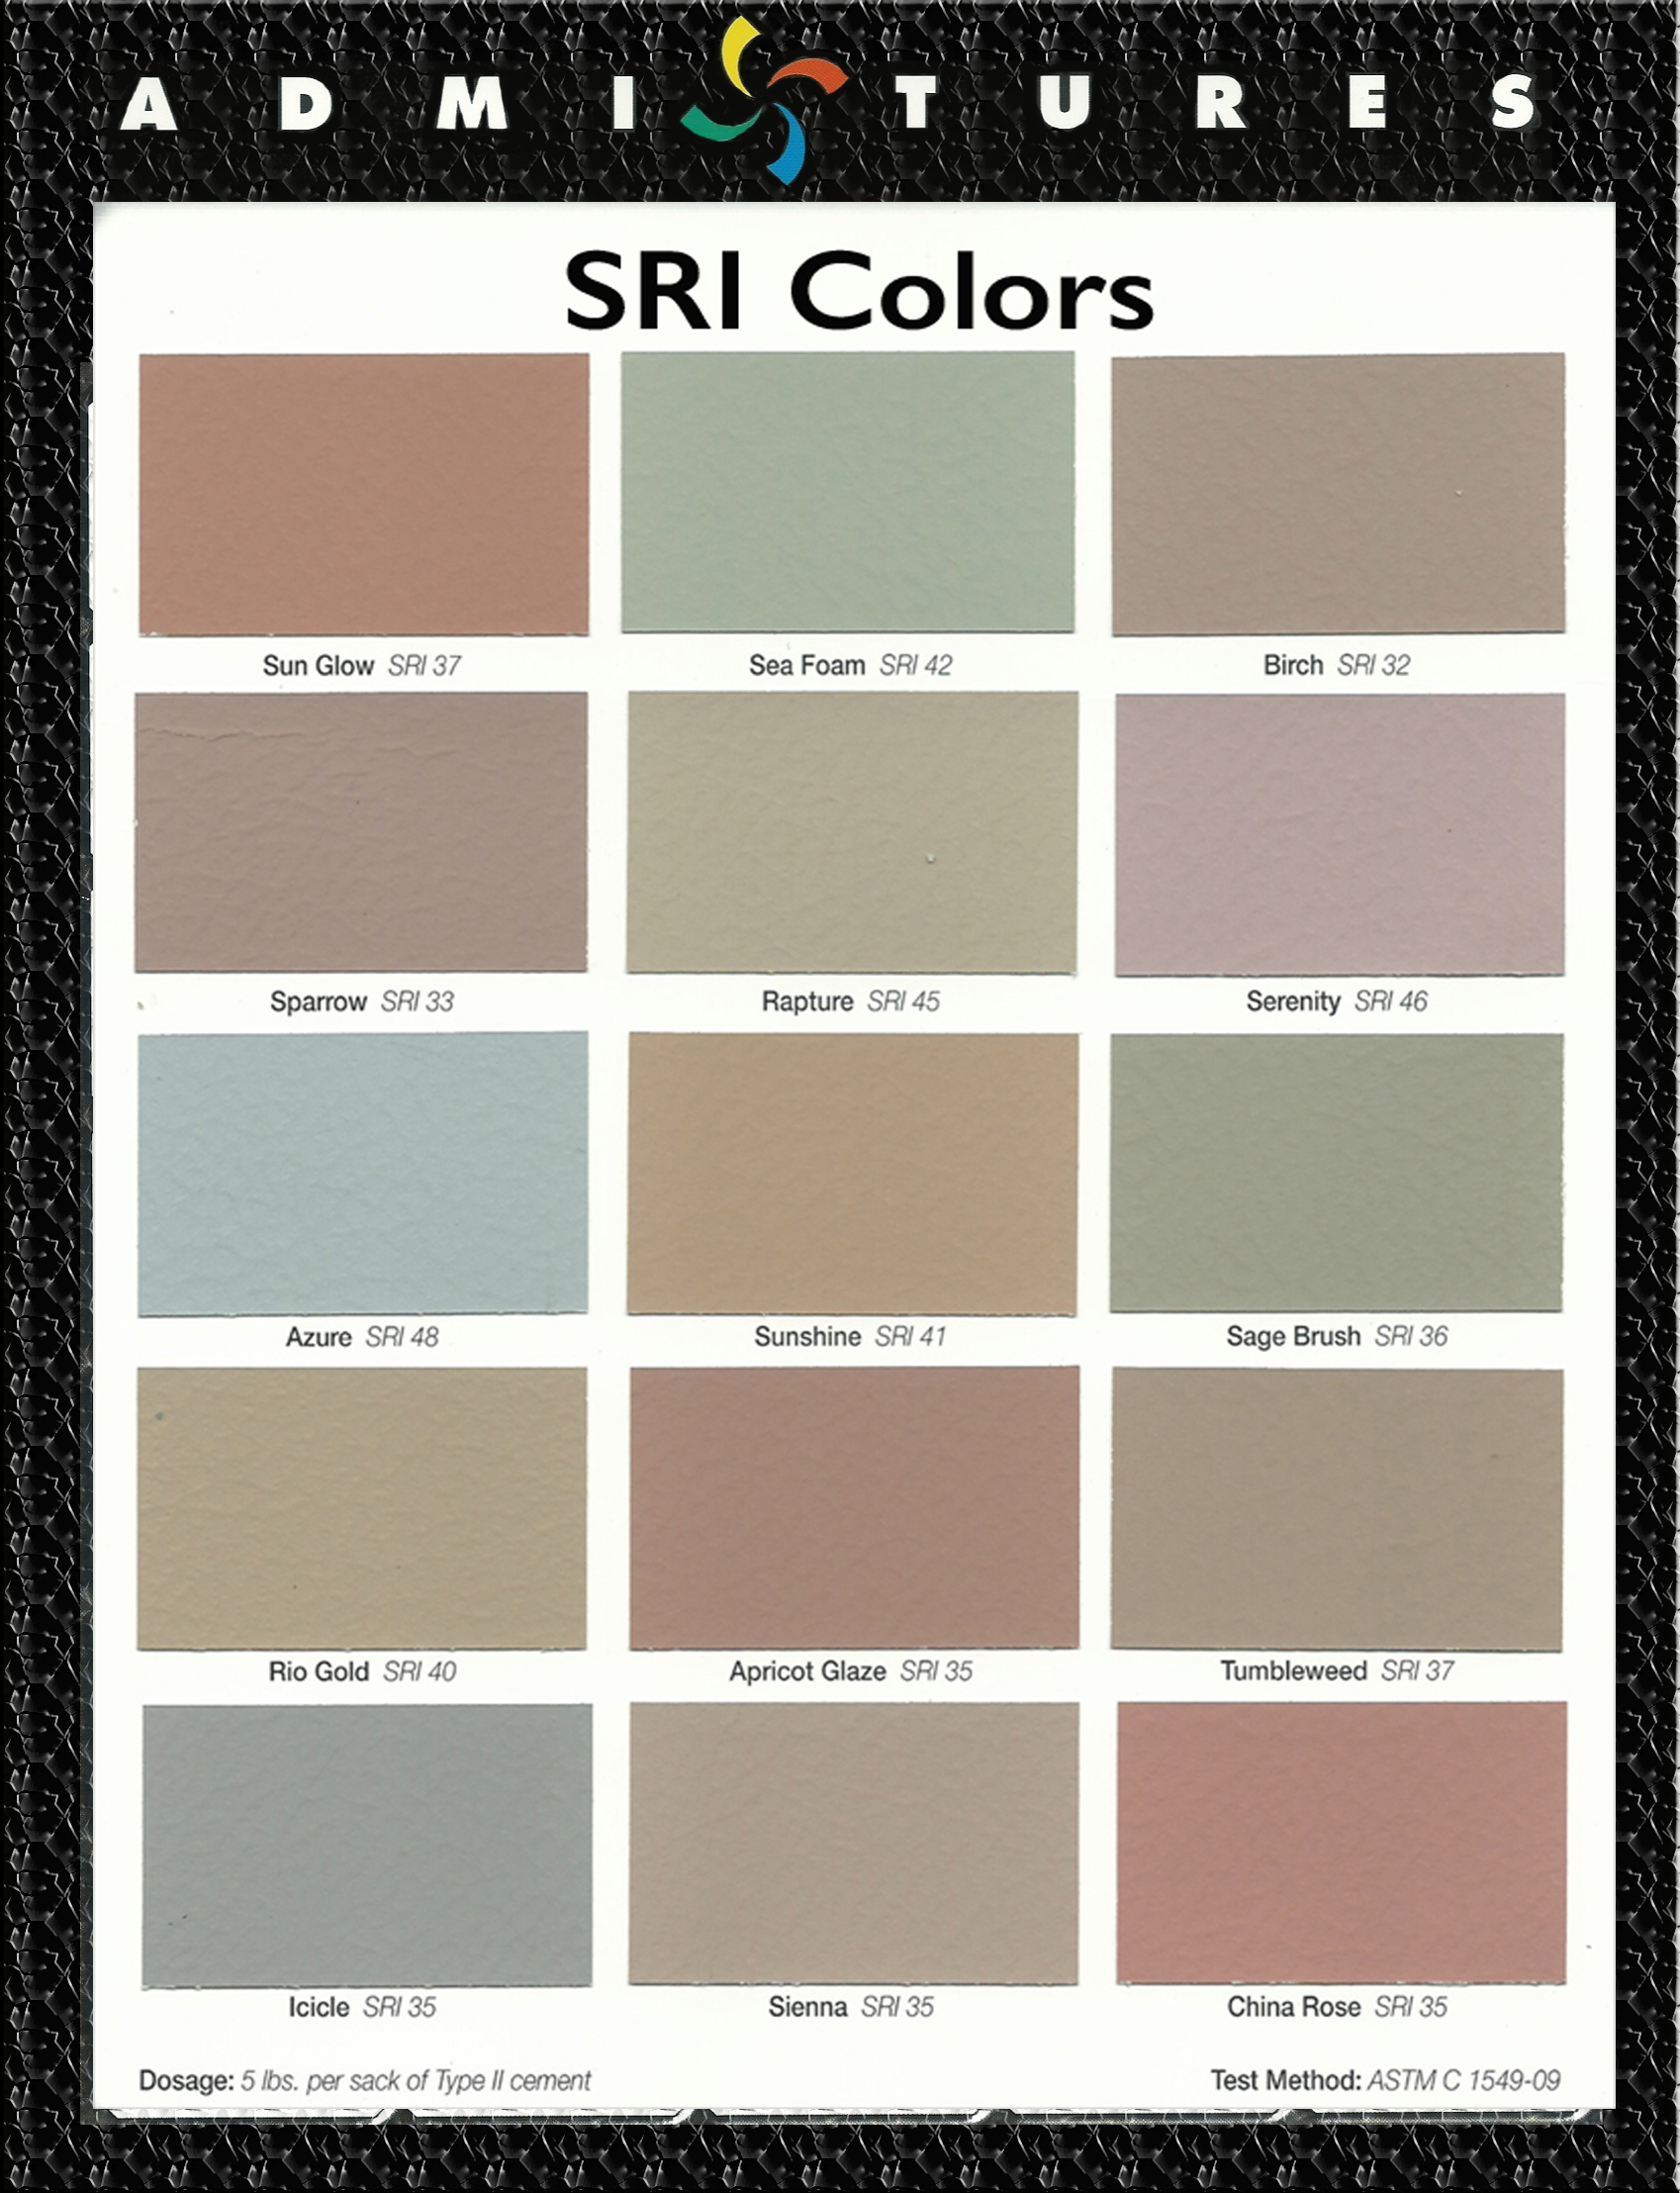 Admixtures inc sri colors the colors represented on this color chart are typically used for projects requiring leed credits the parameters being set by the us green building nvjuhfo Images